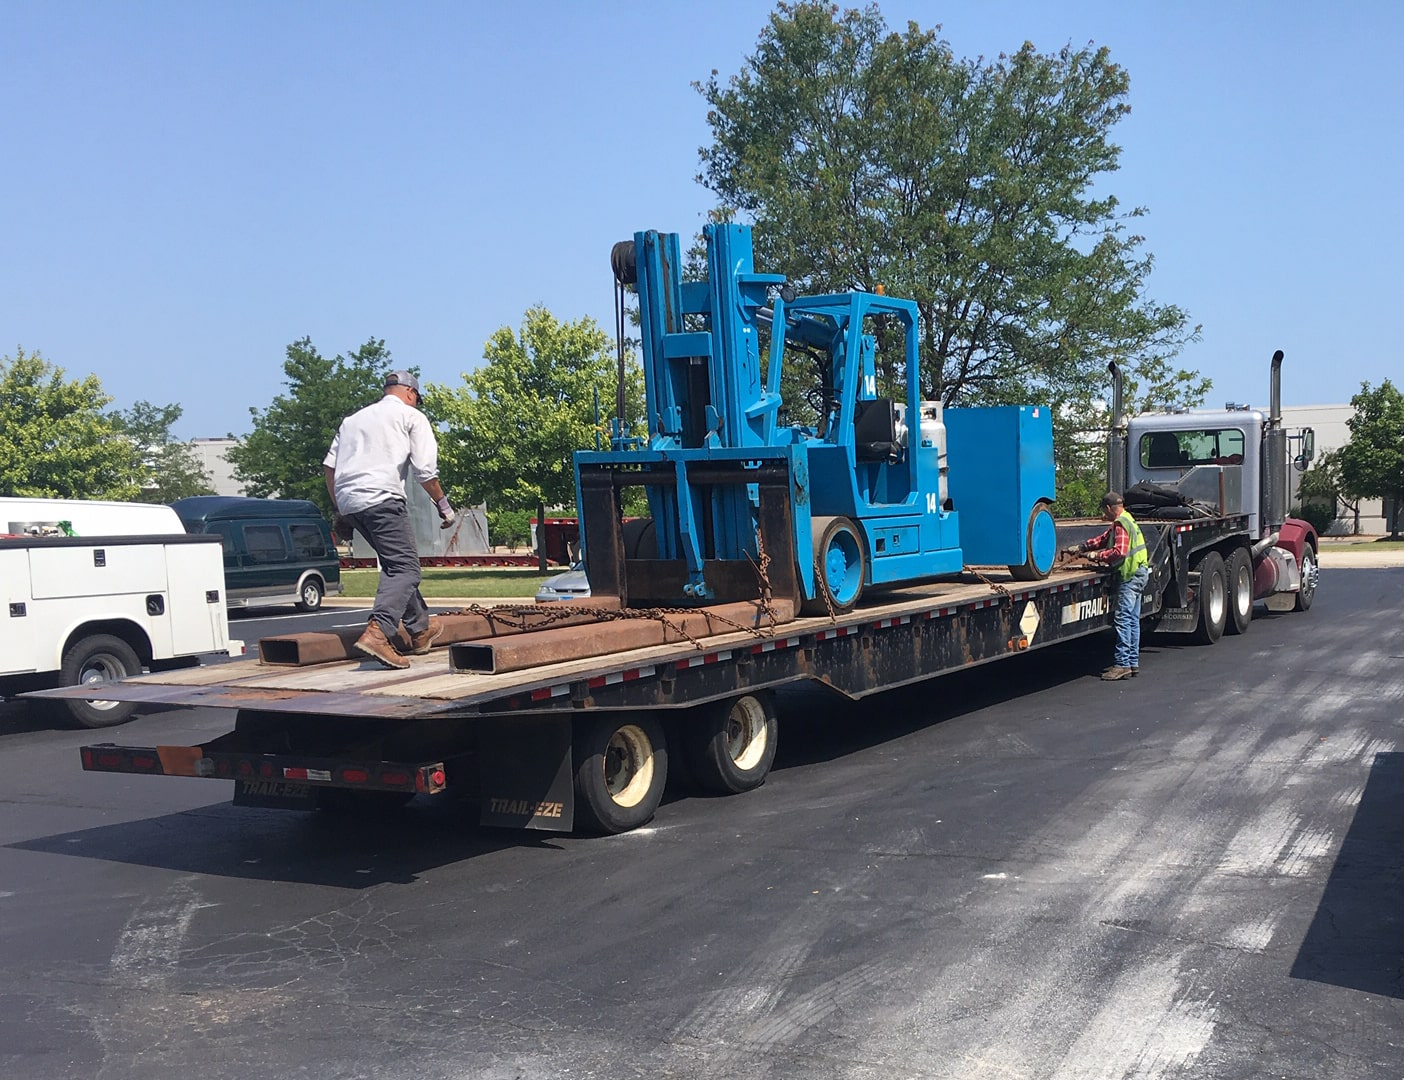 How to move oversize equipment safely with permits